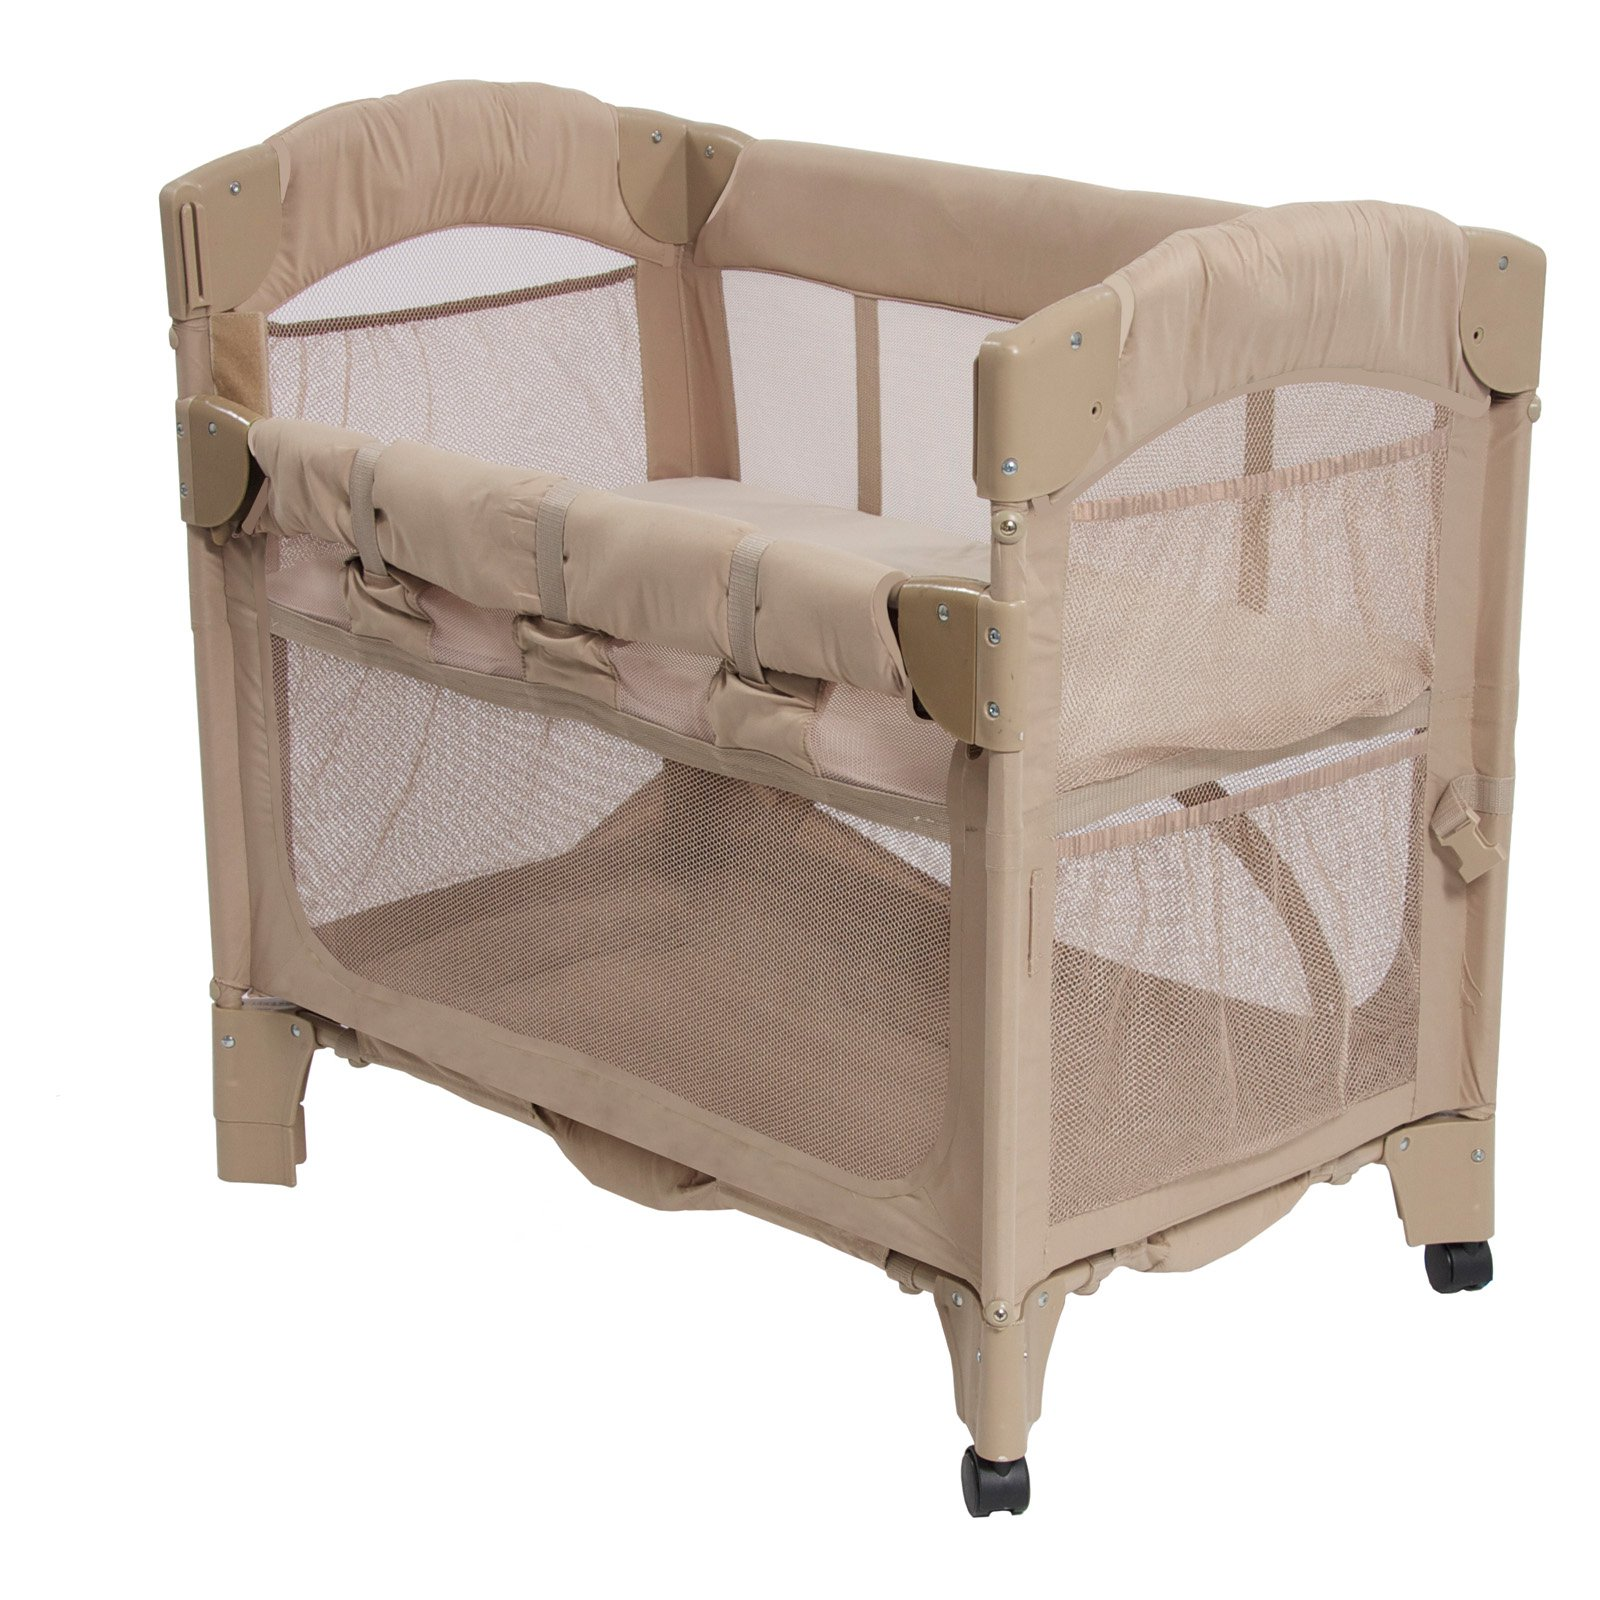 Arms Reach Mini Arc Co-Sleeper Bassinet - Toffee